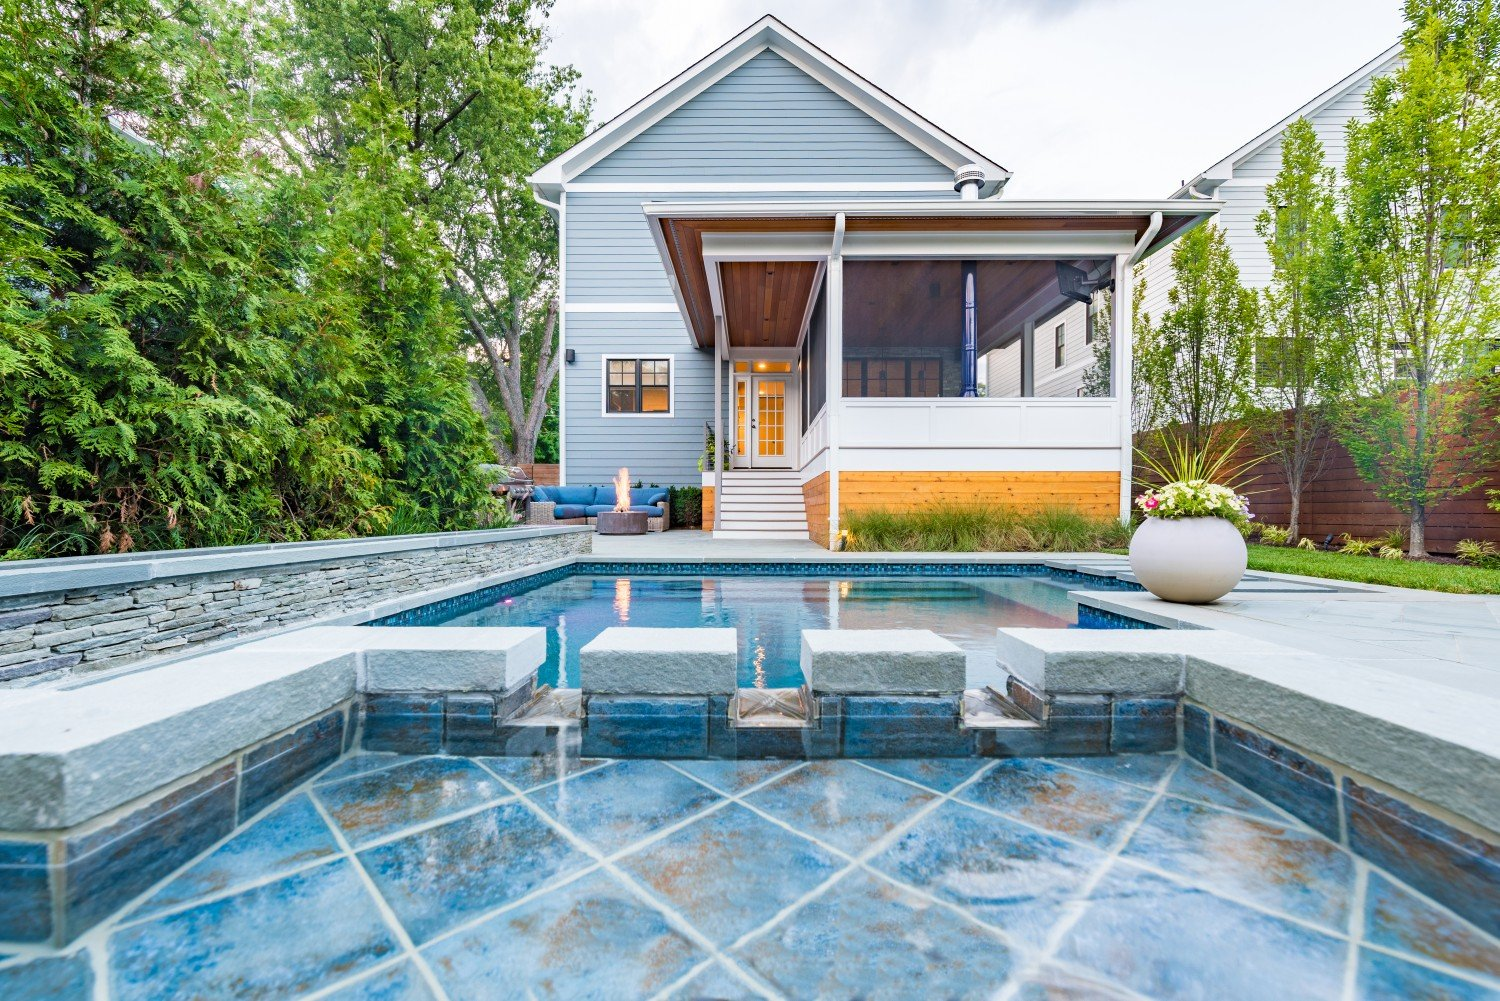 award-winning-patio-with-pool-in-daytime